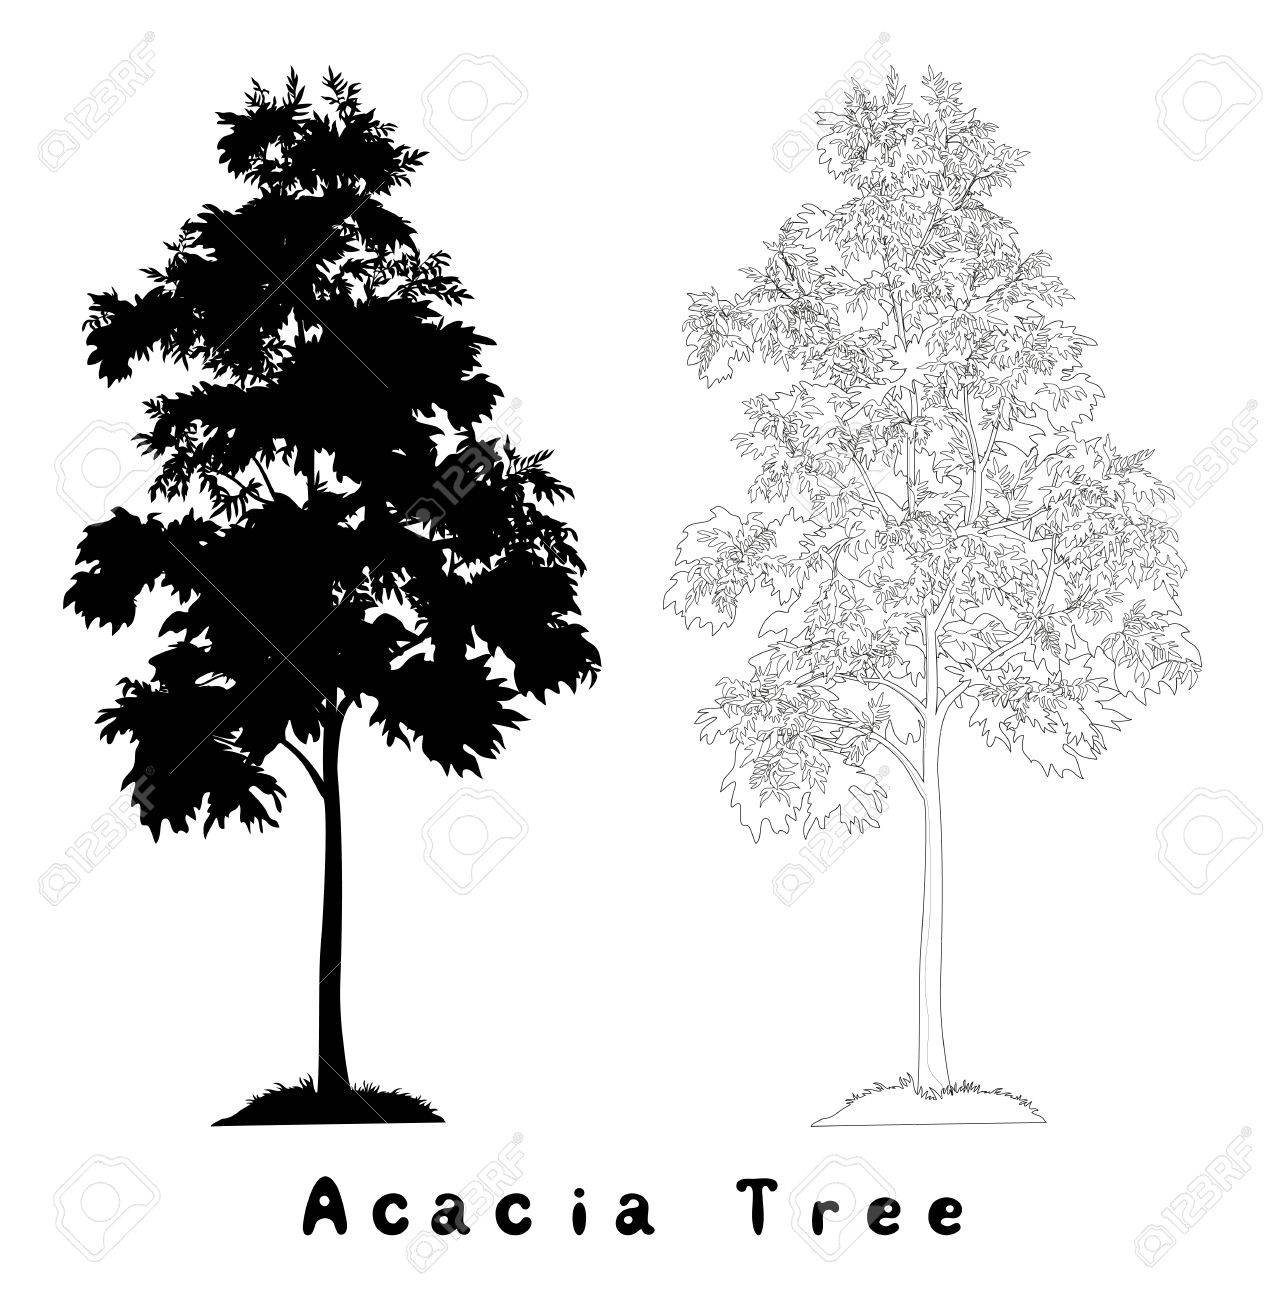 Acacia Tree Vectors Download Free Vector Art Stock Graphics - Vector acacia tree with leaves and grass black silhouette contours and inscriptions on white background